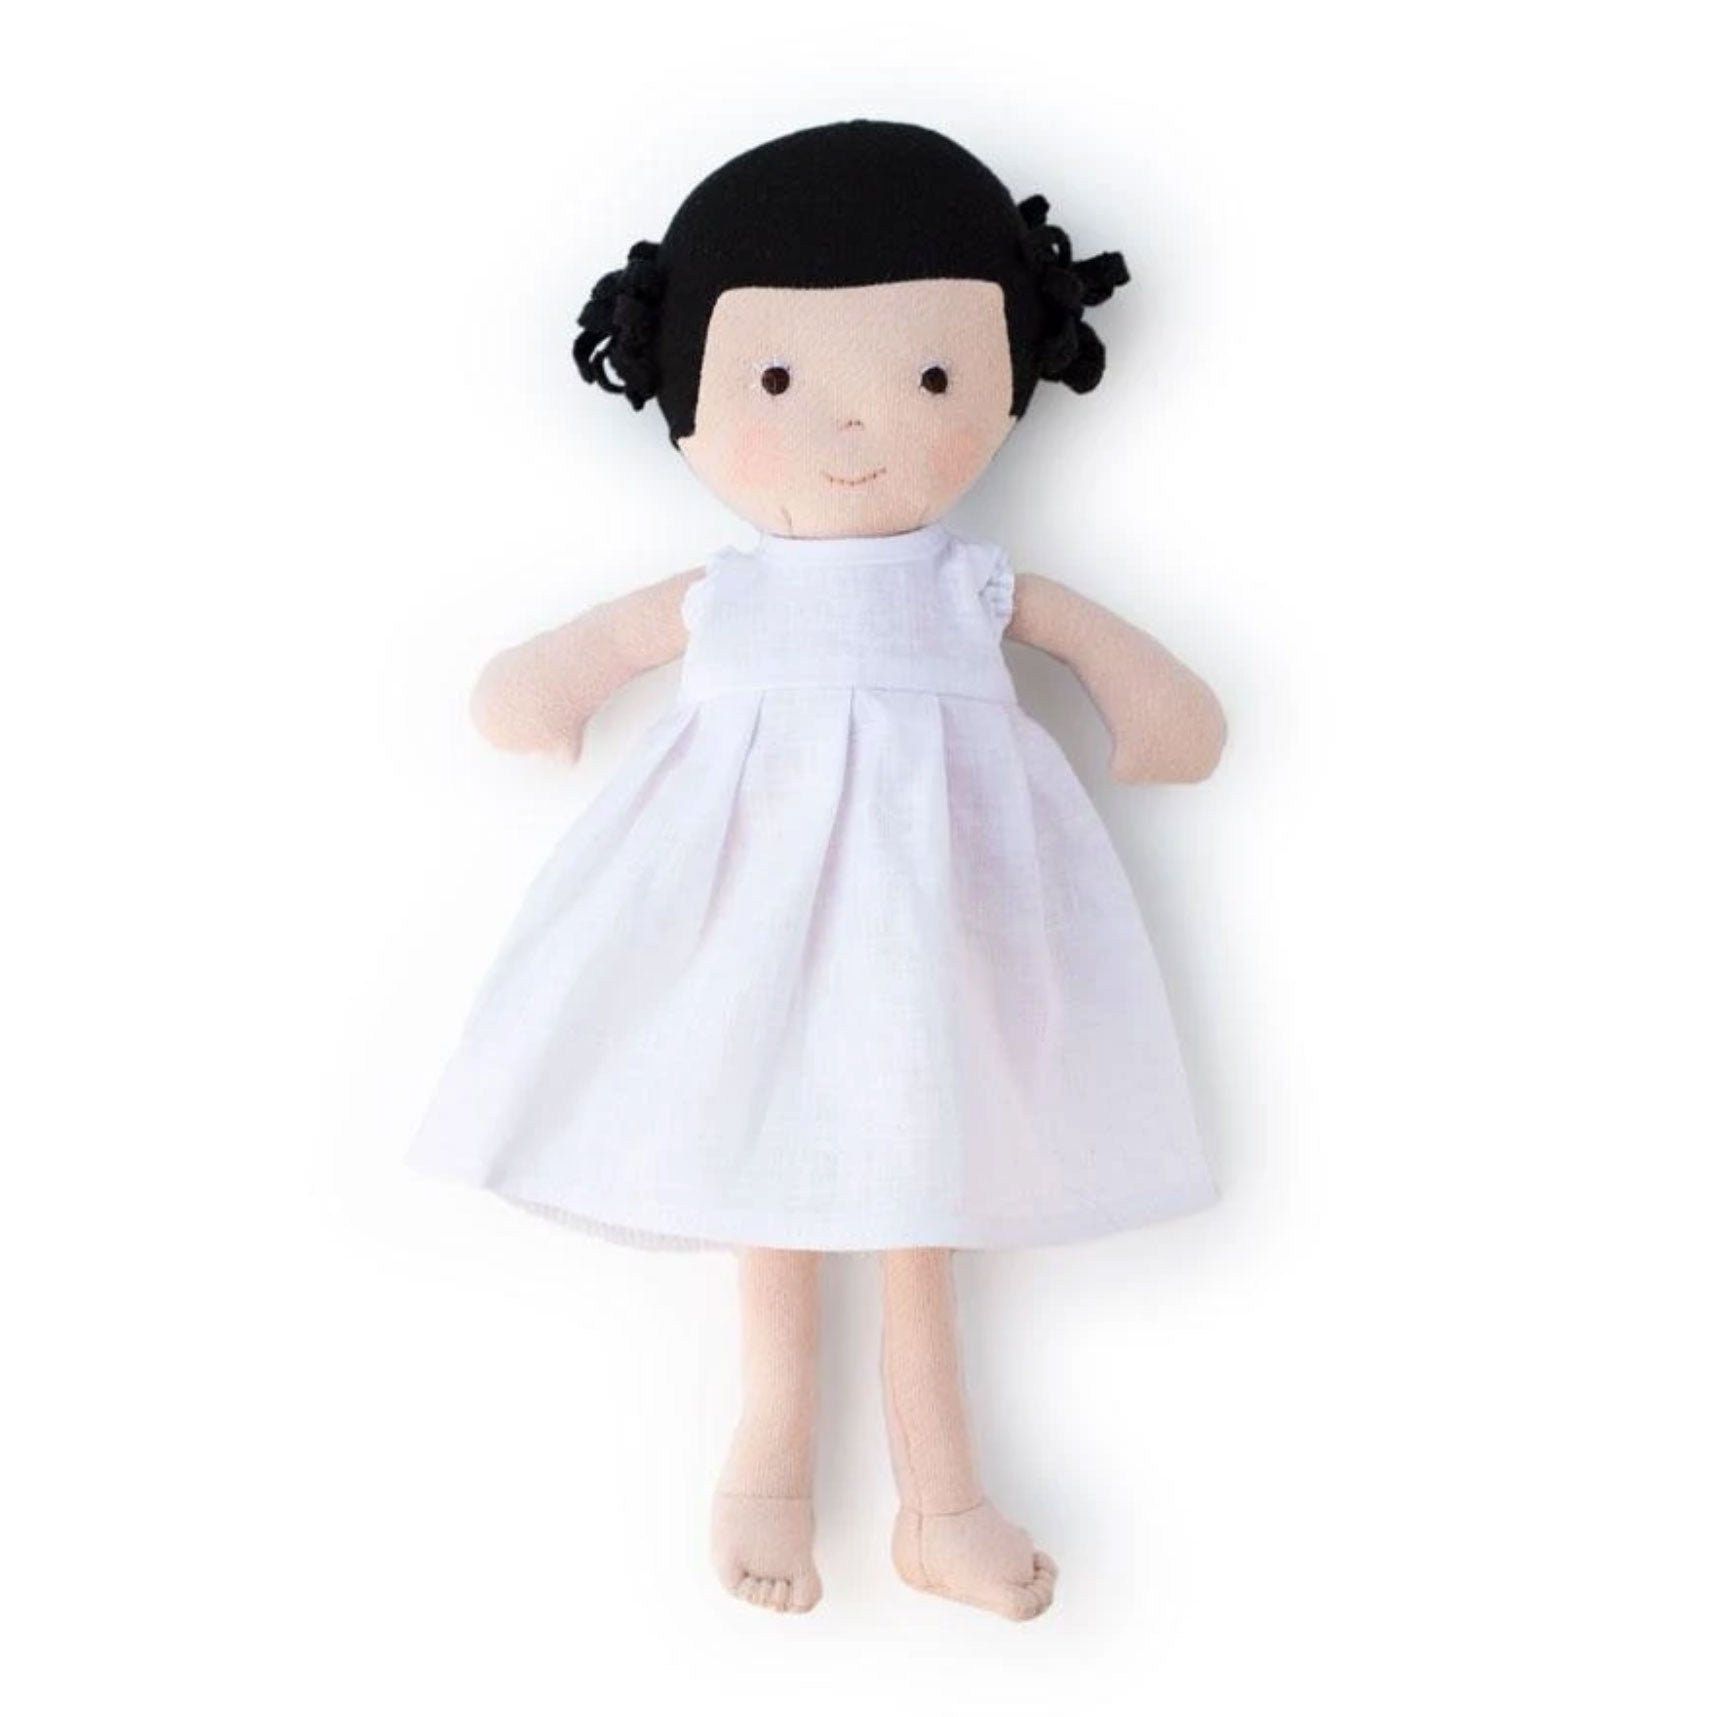 Hazel Village Nell soft doll at Bonjour Baby Baskets, luxury baby gifts